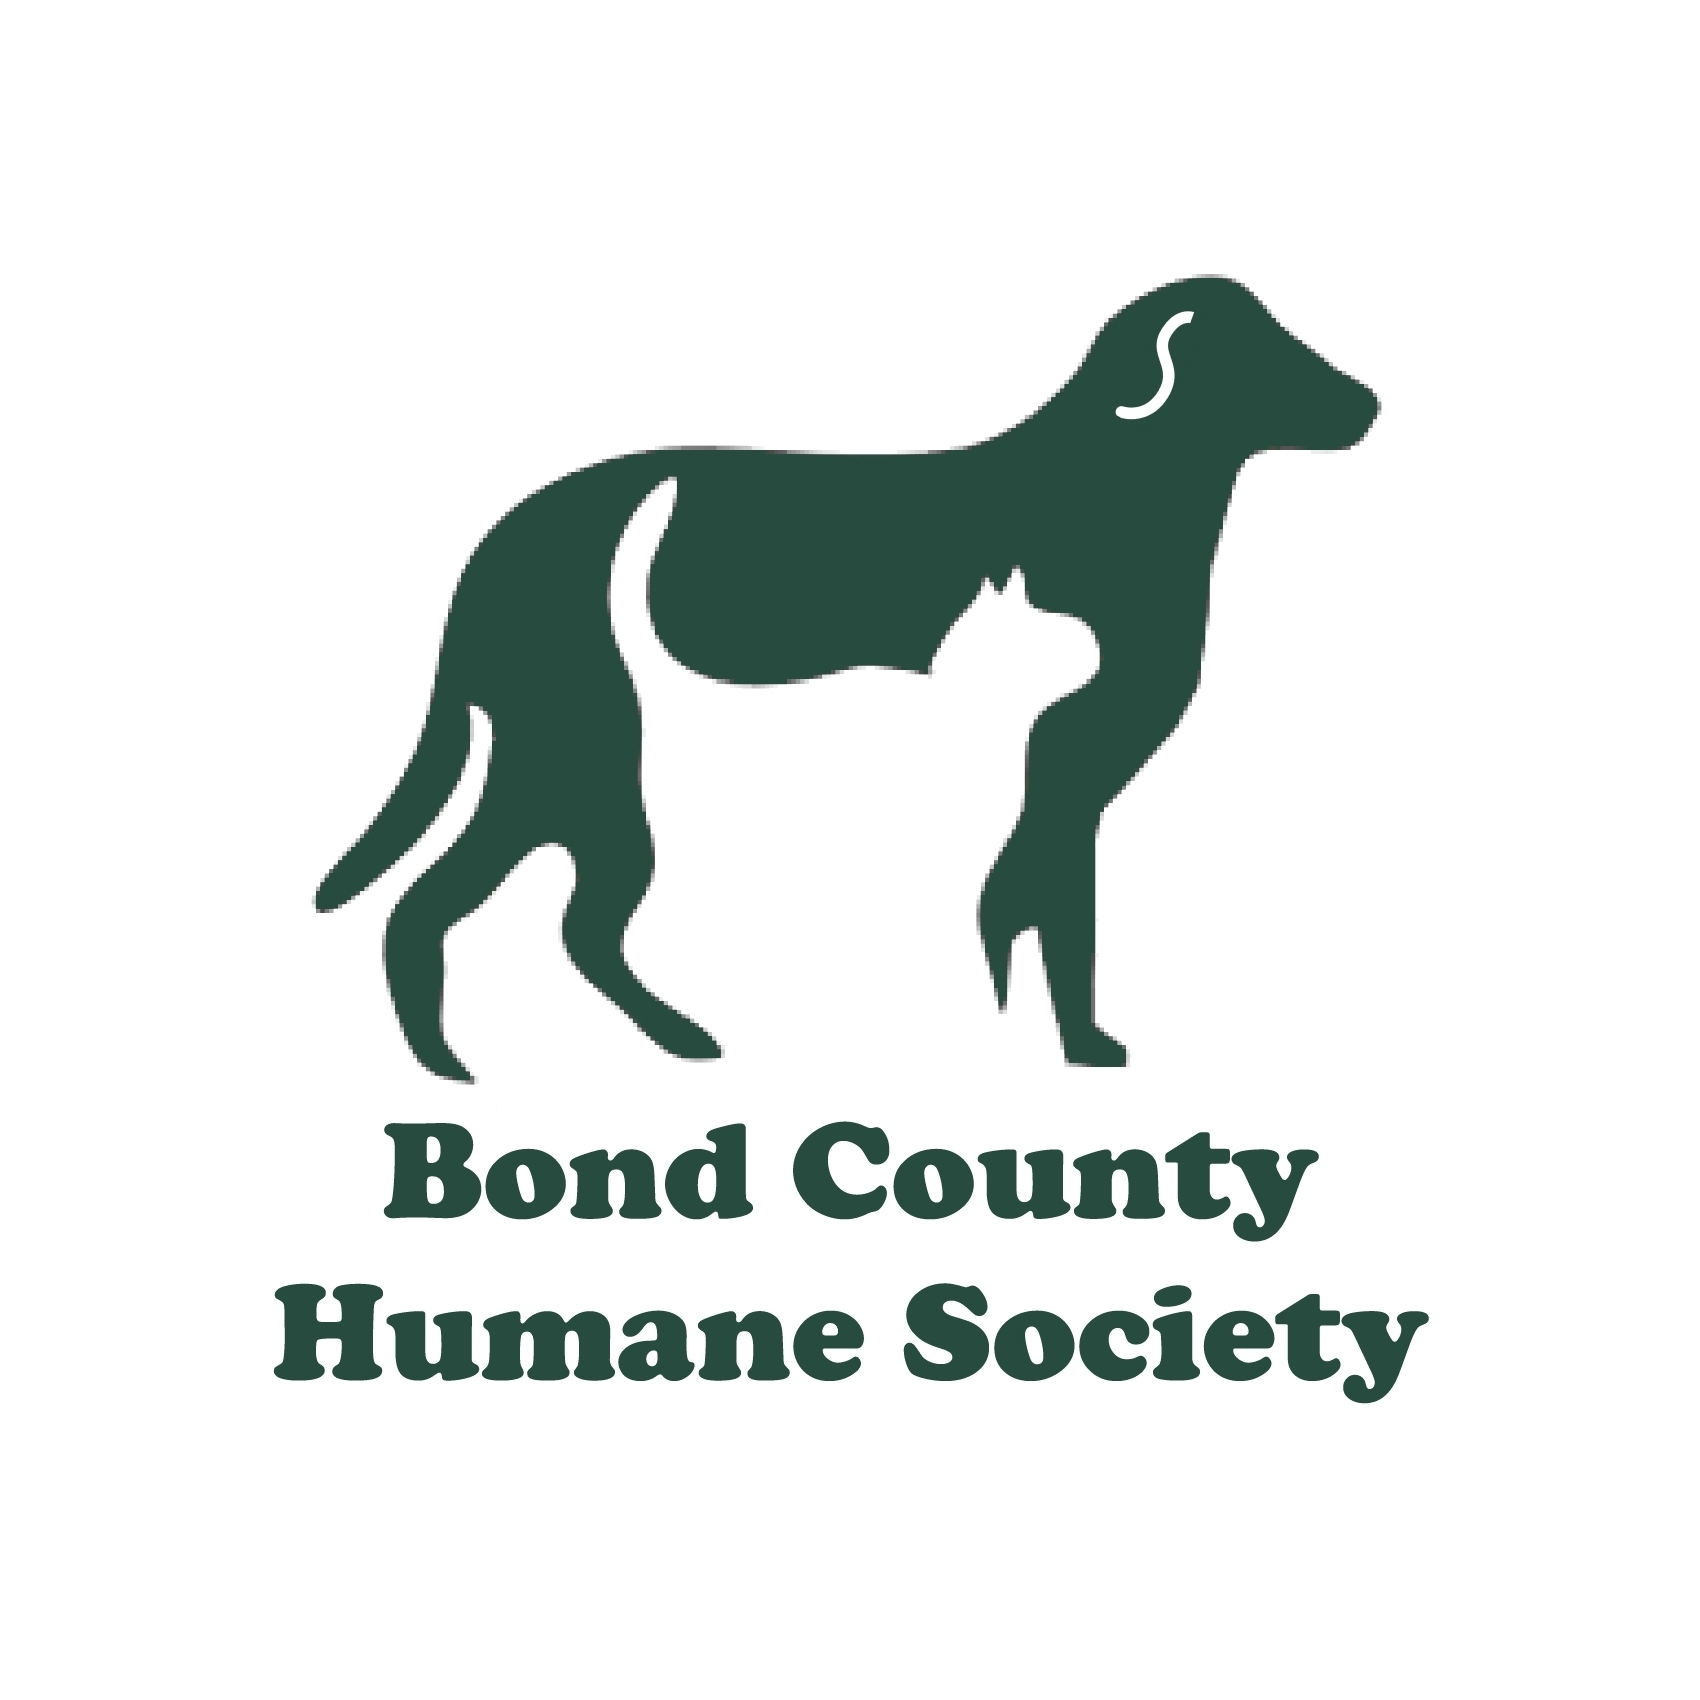 Bond County Humane Society